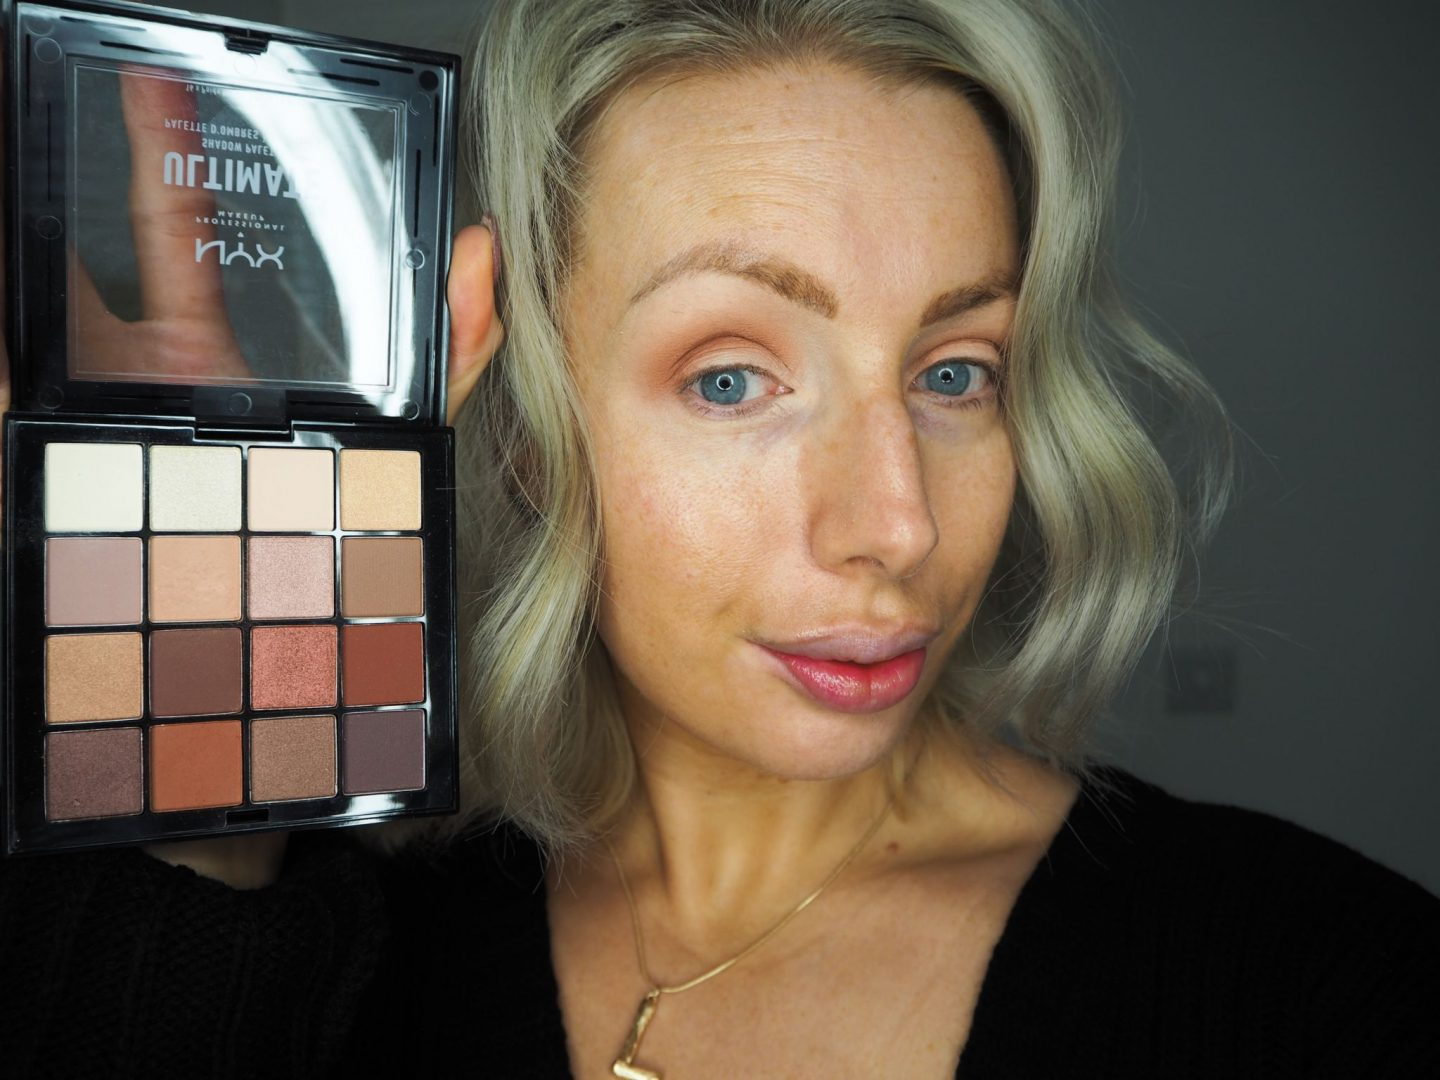 Natural day time and dramatic night time makeup look using NYX Cosmetics from Boots